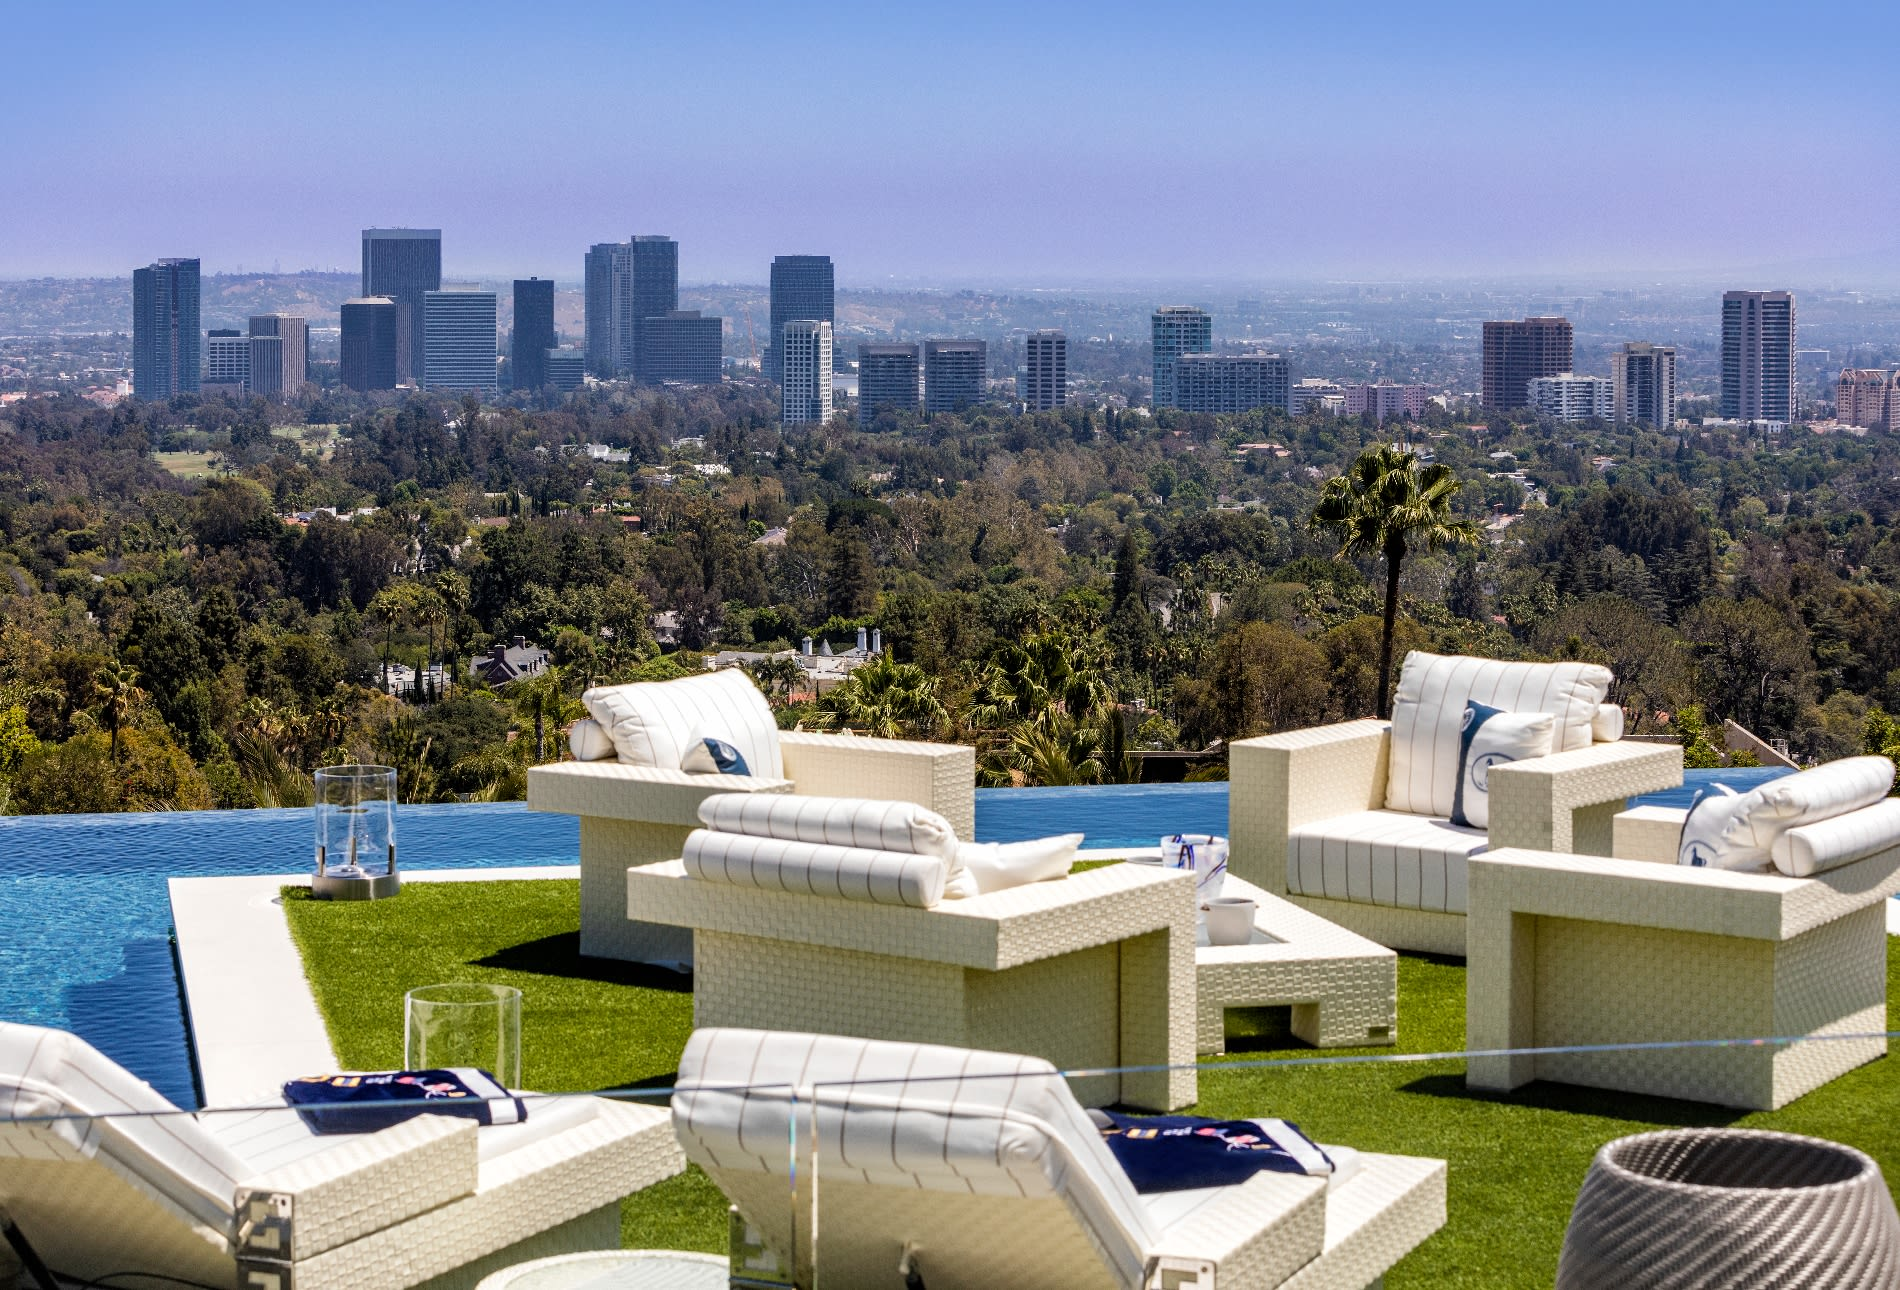 924 bel air rd a luxury home for sale in los angeles los angeles